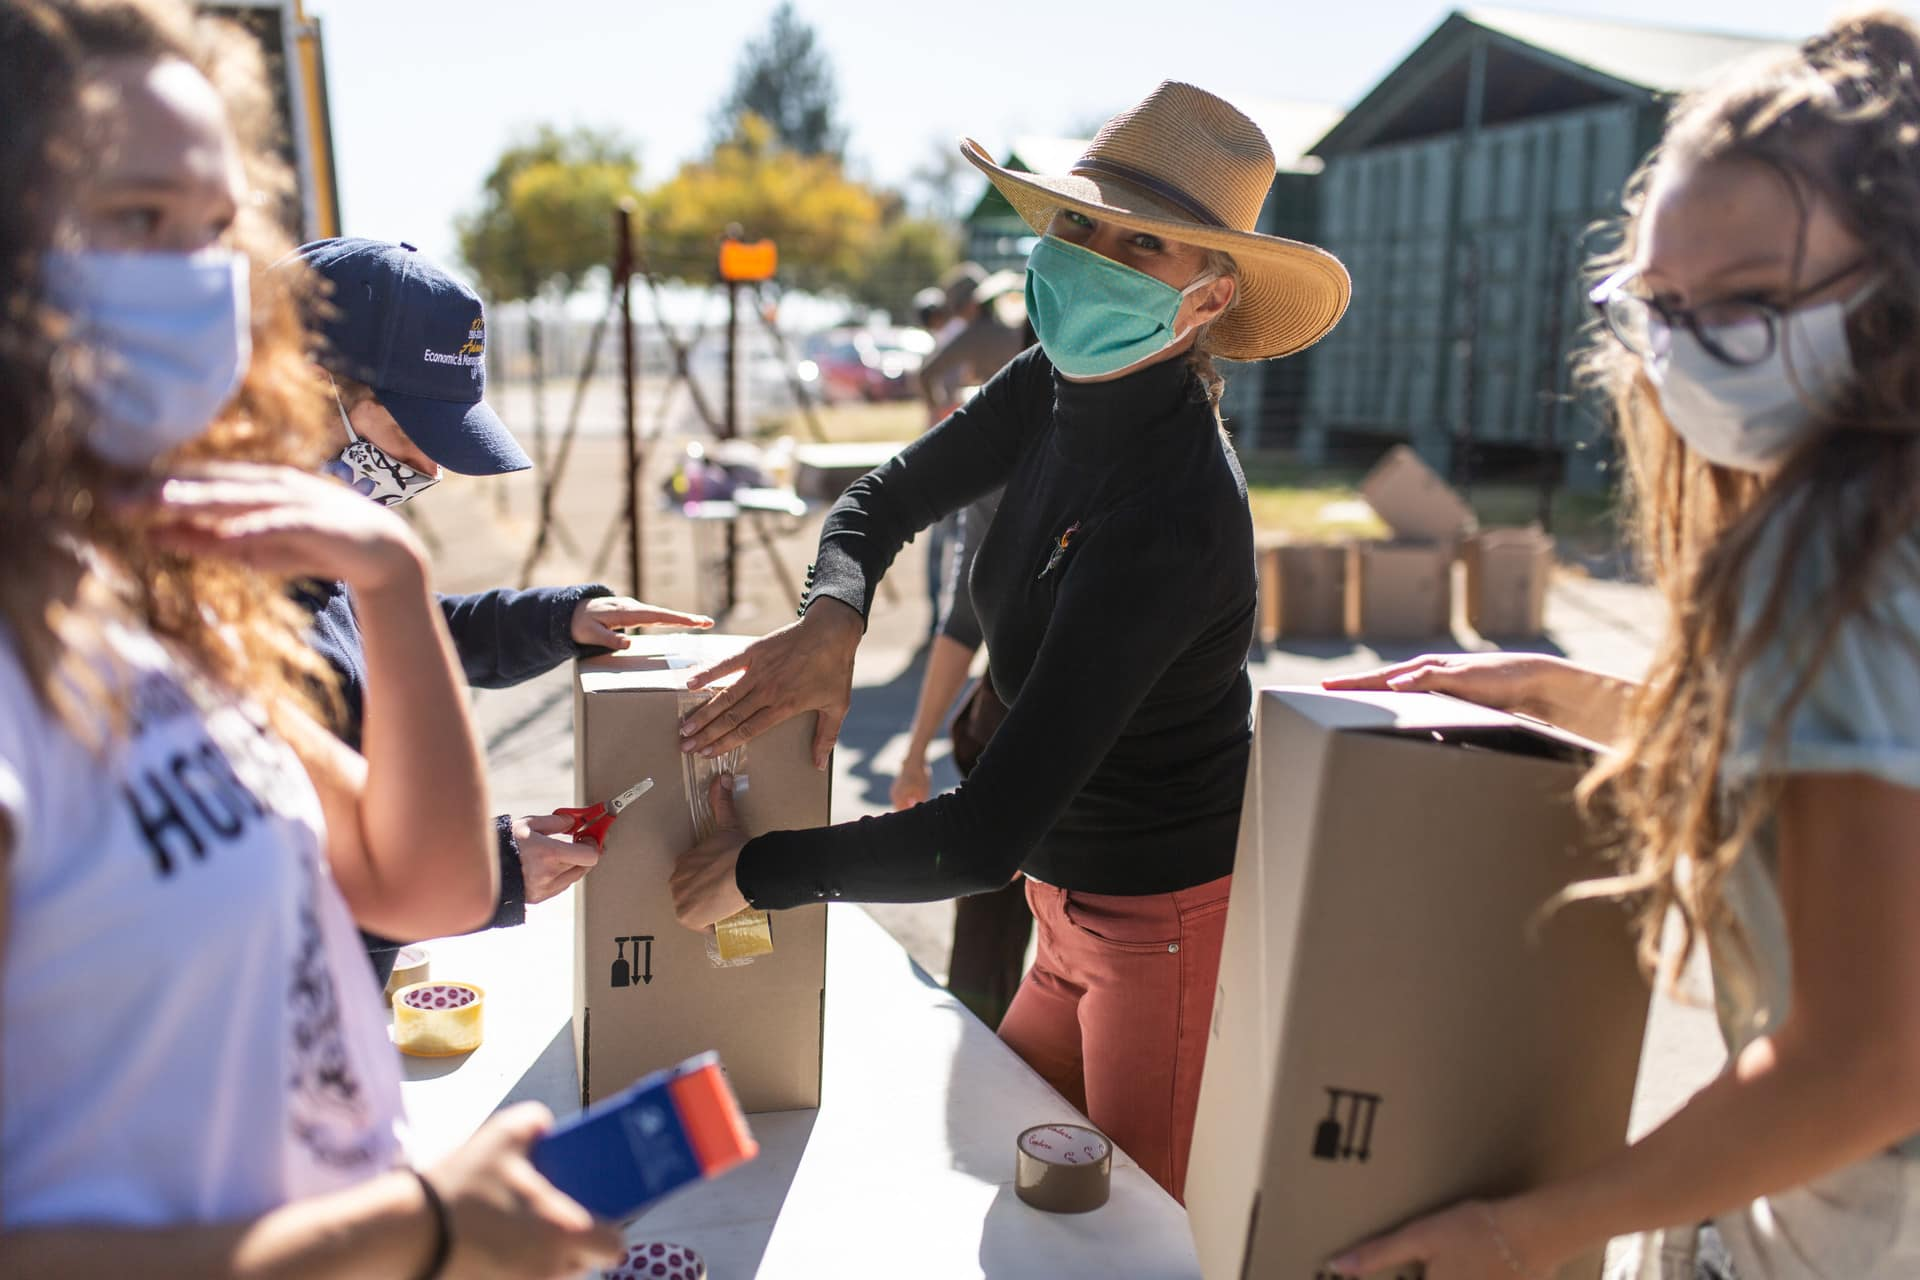 Volunteers working outdoors wearing face masks for not-for-profit